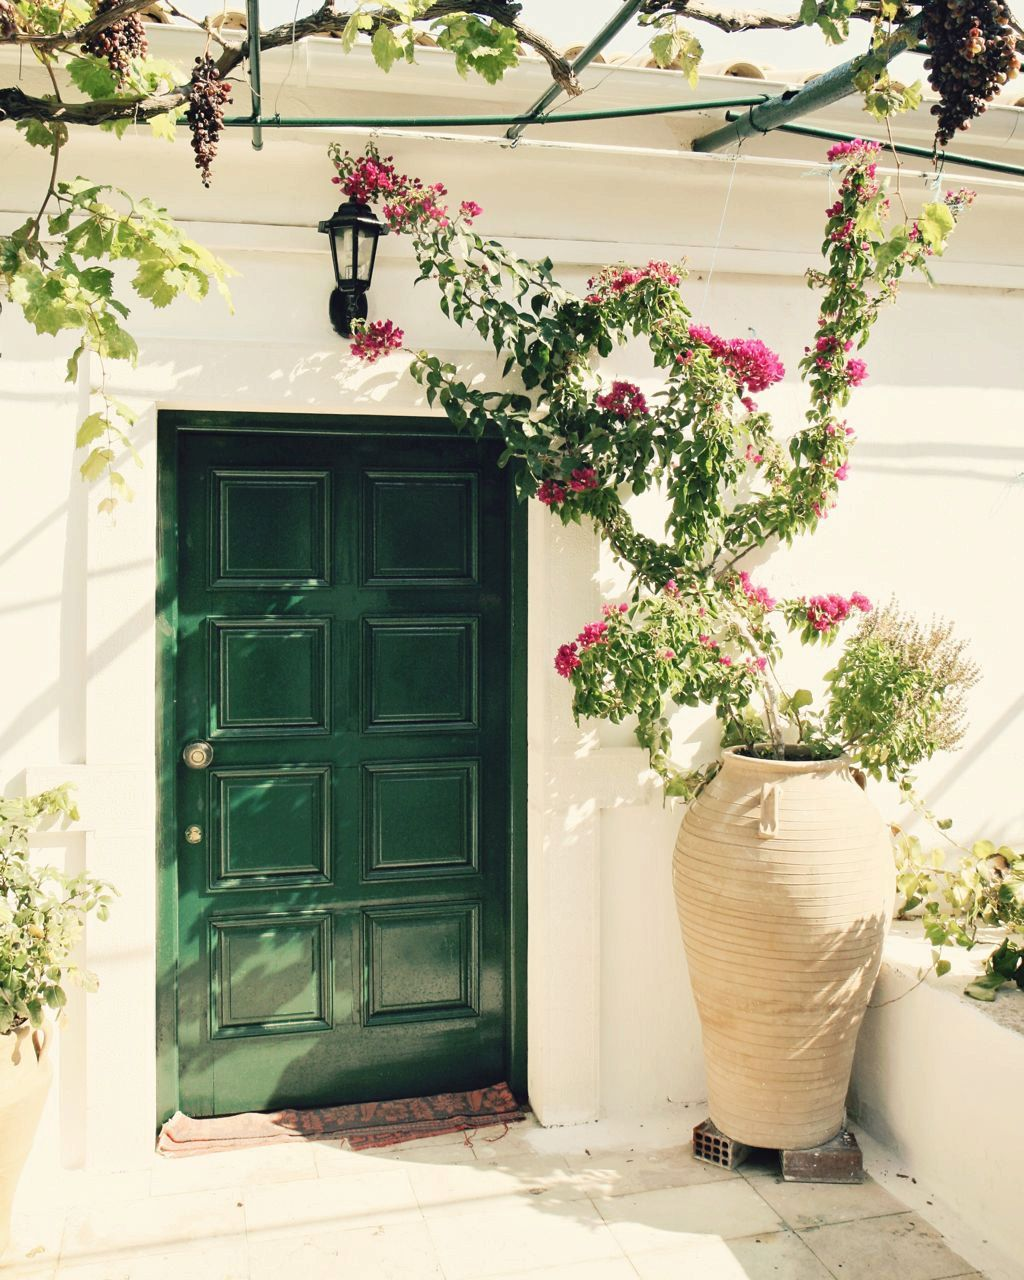 Exterior Paint Colors For Mediterranean Homes: Flowers - Mediterranean Home Decor